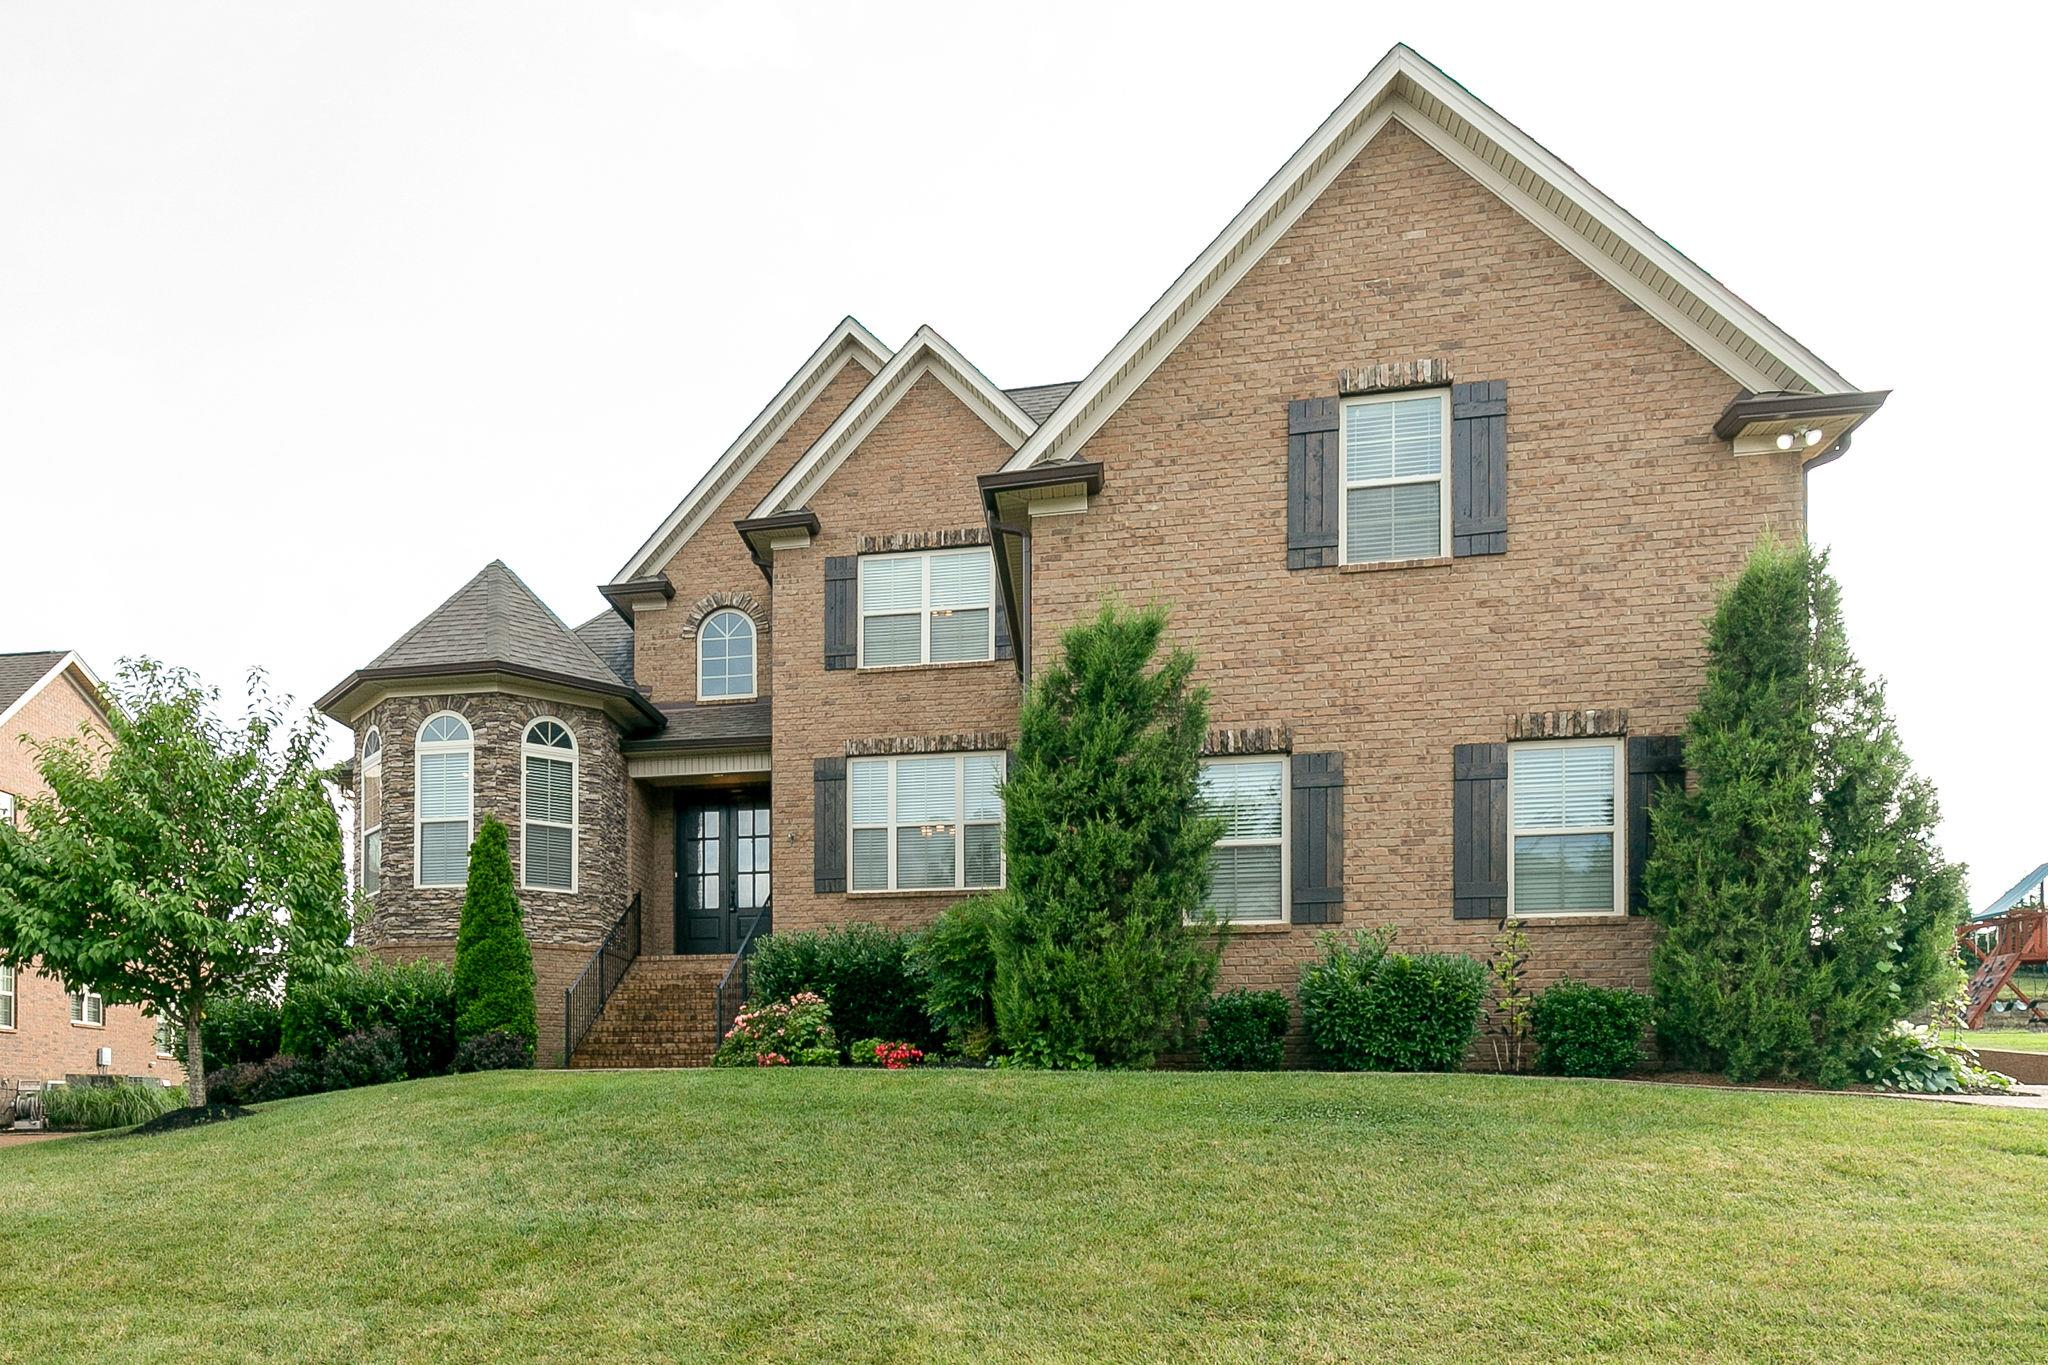 2013 Brisbane Dr, Spring Hill, TN 37174 - Spring Hill, TN real estate listing